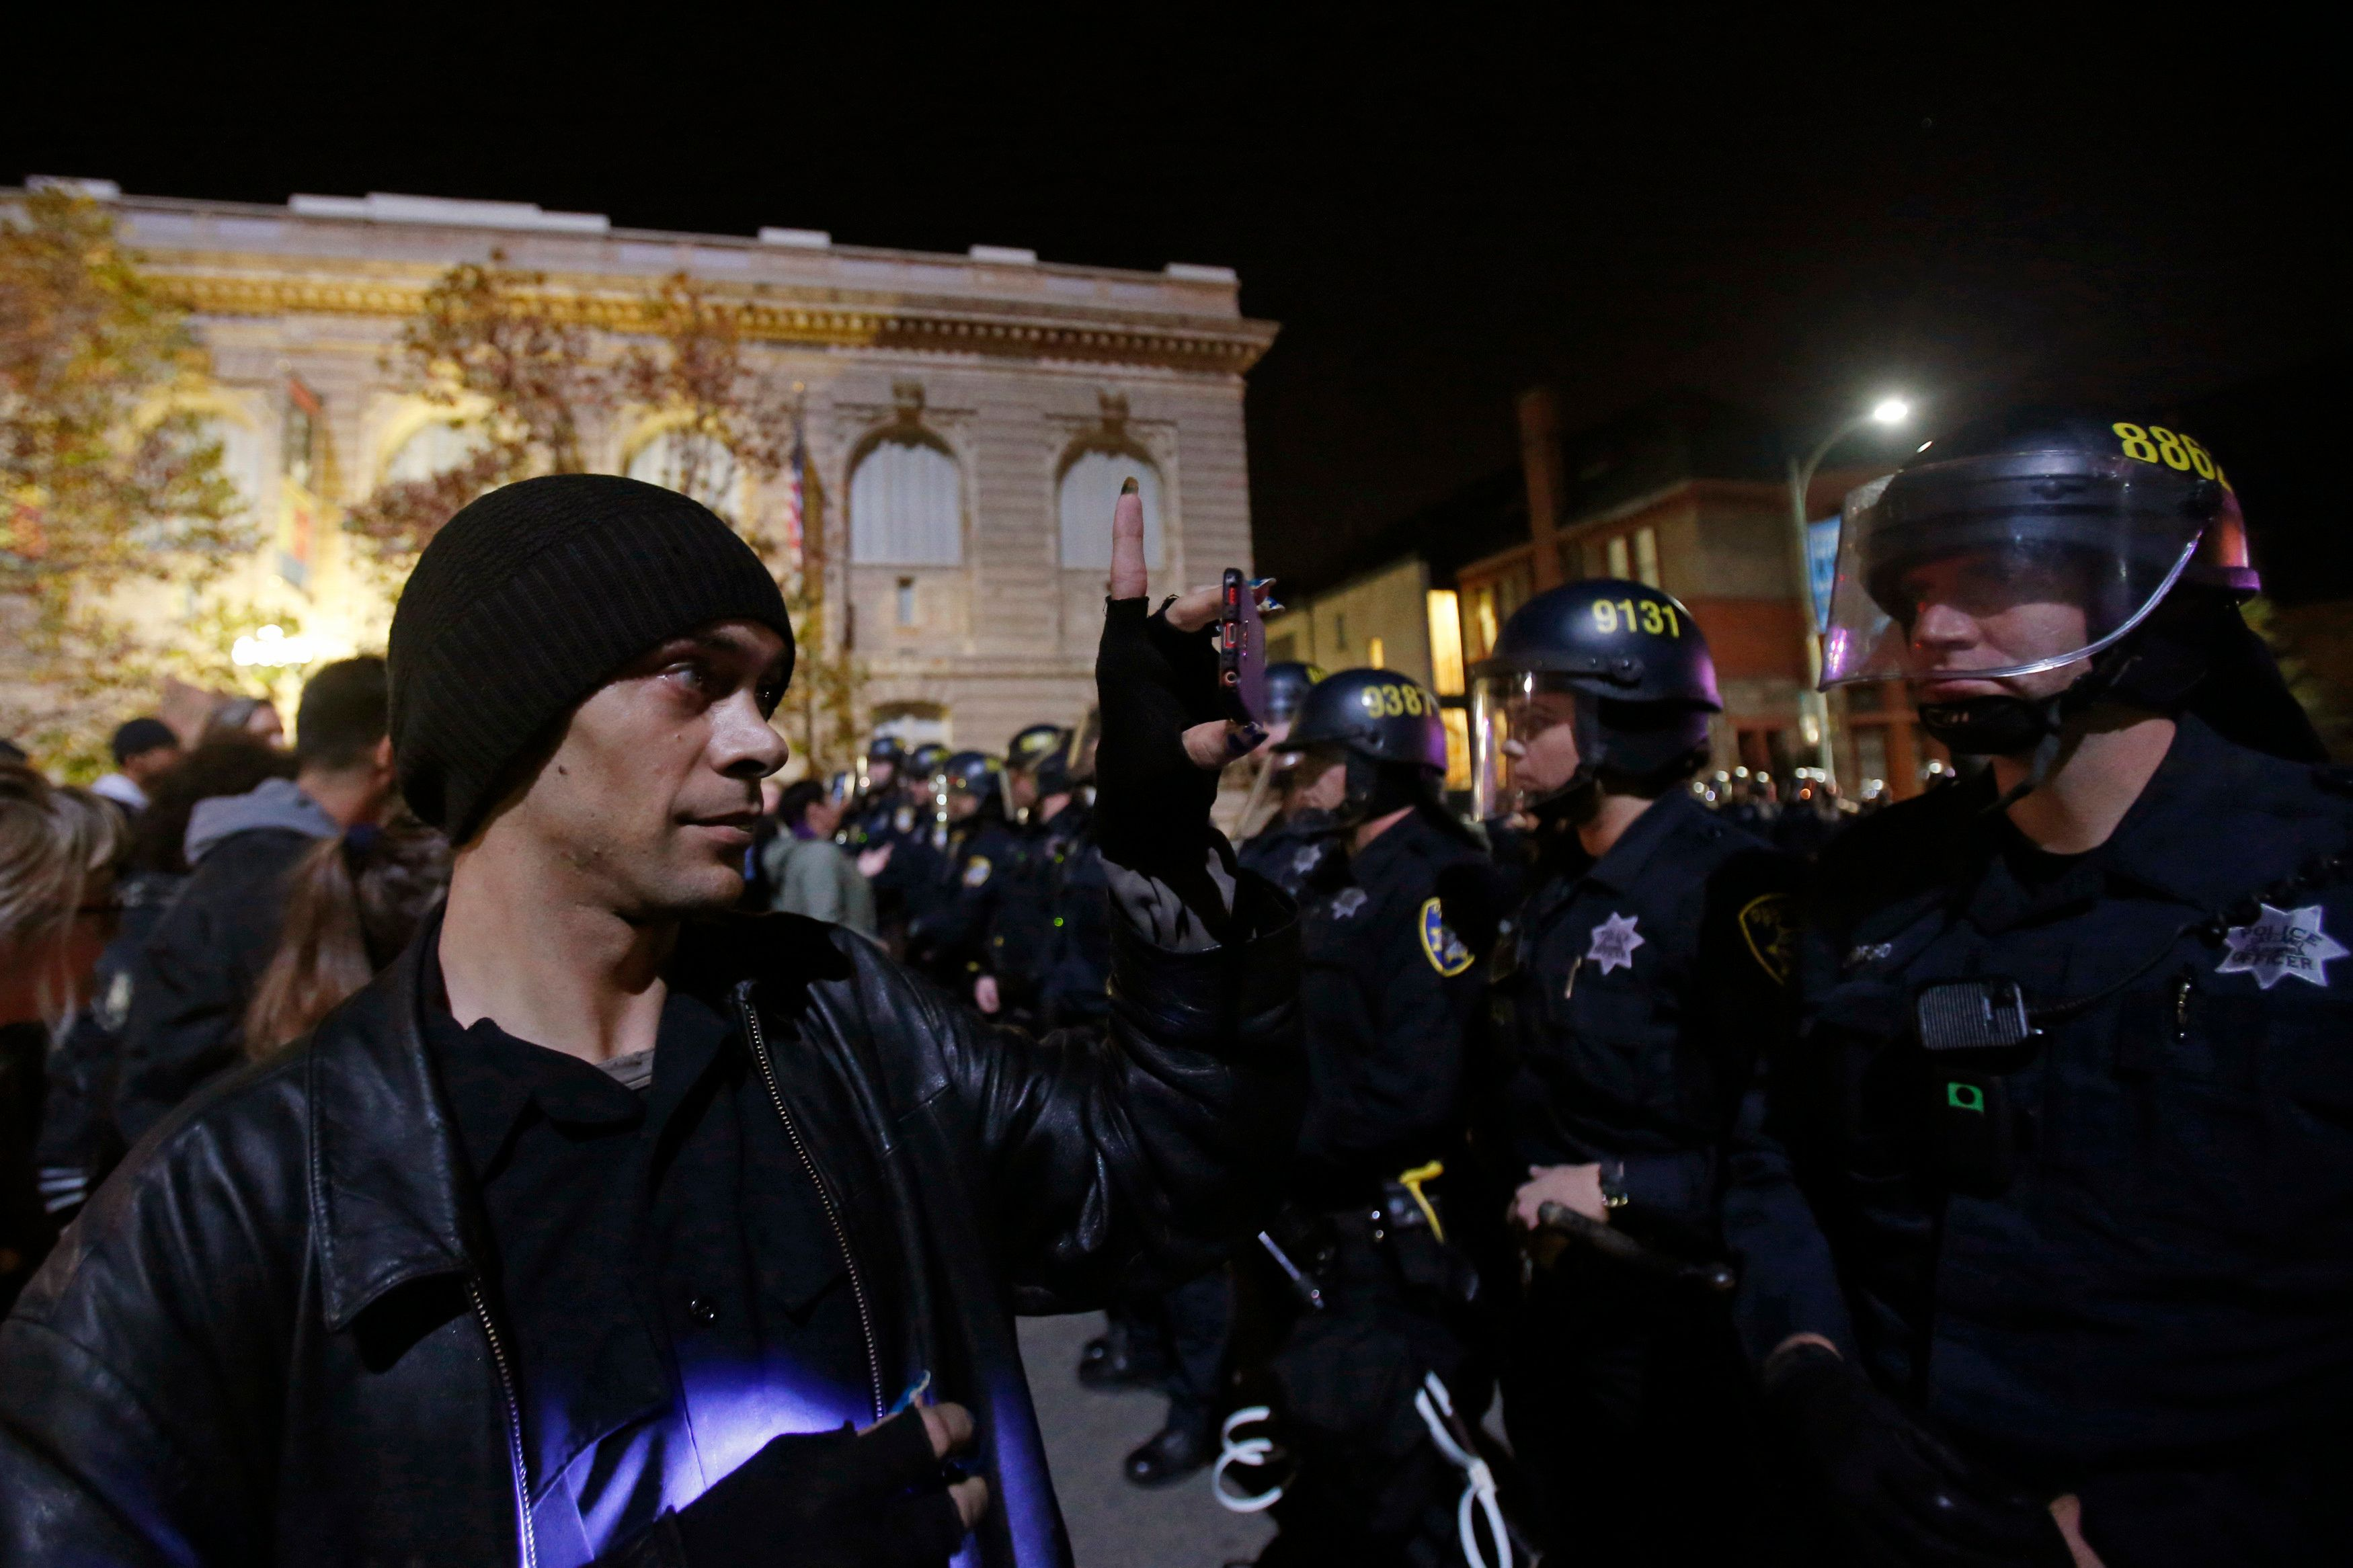 A protester records a video of police officers during a demonstration following the grand jury decision on Monday in the Ferguson, Missouri shooting of Michael Brown, in Oakland, California November 25, 2014. REUTERS/Stephen Lam  (UNITED STATES - Tags: CIVIL UNREST)